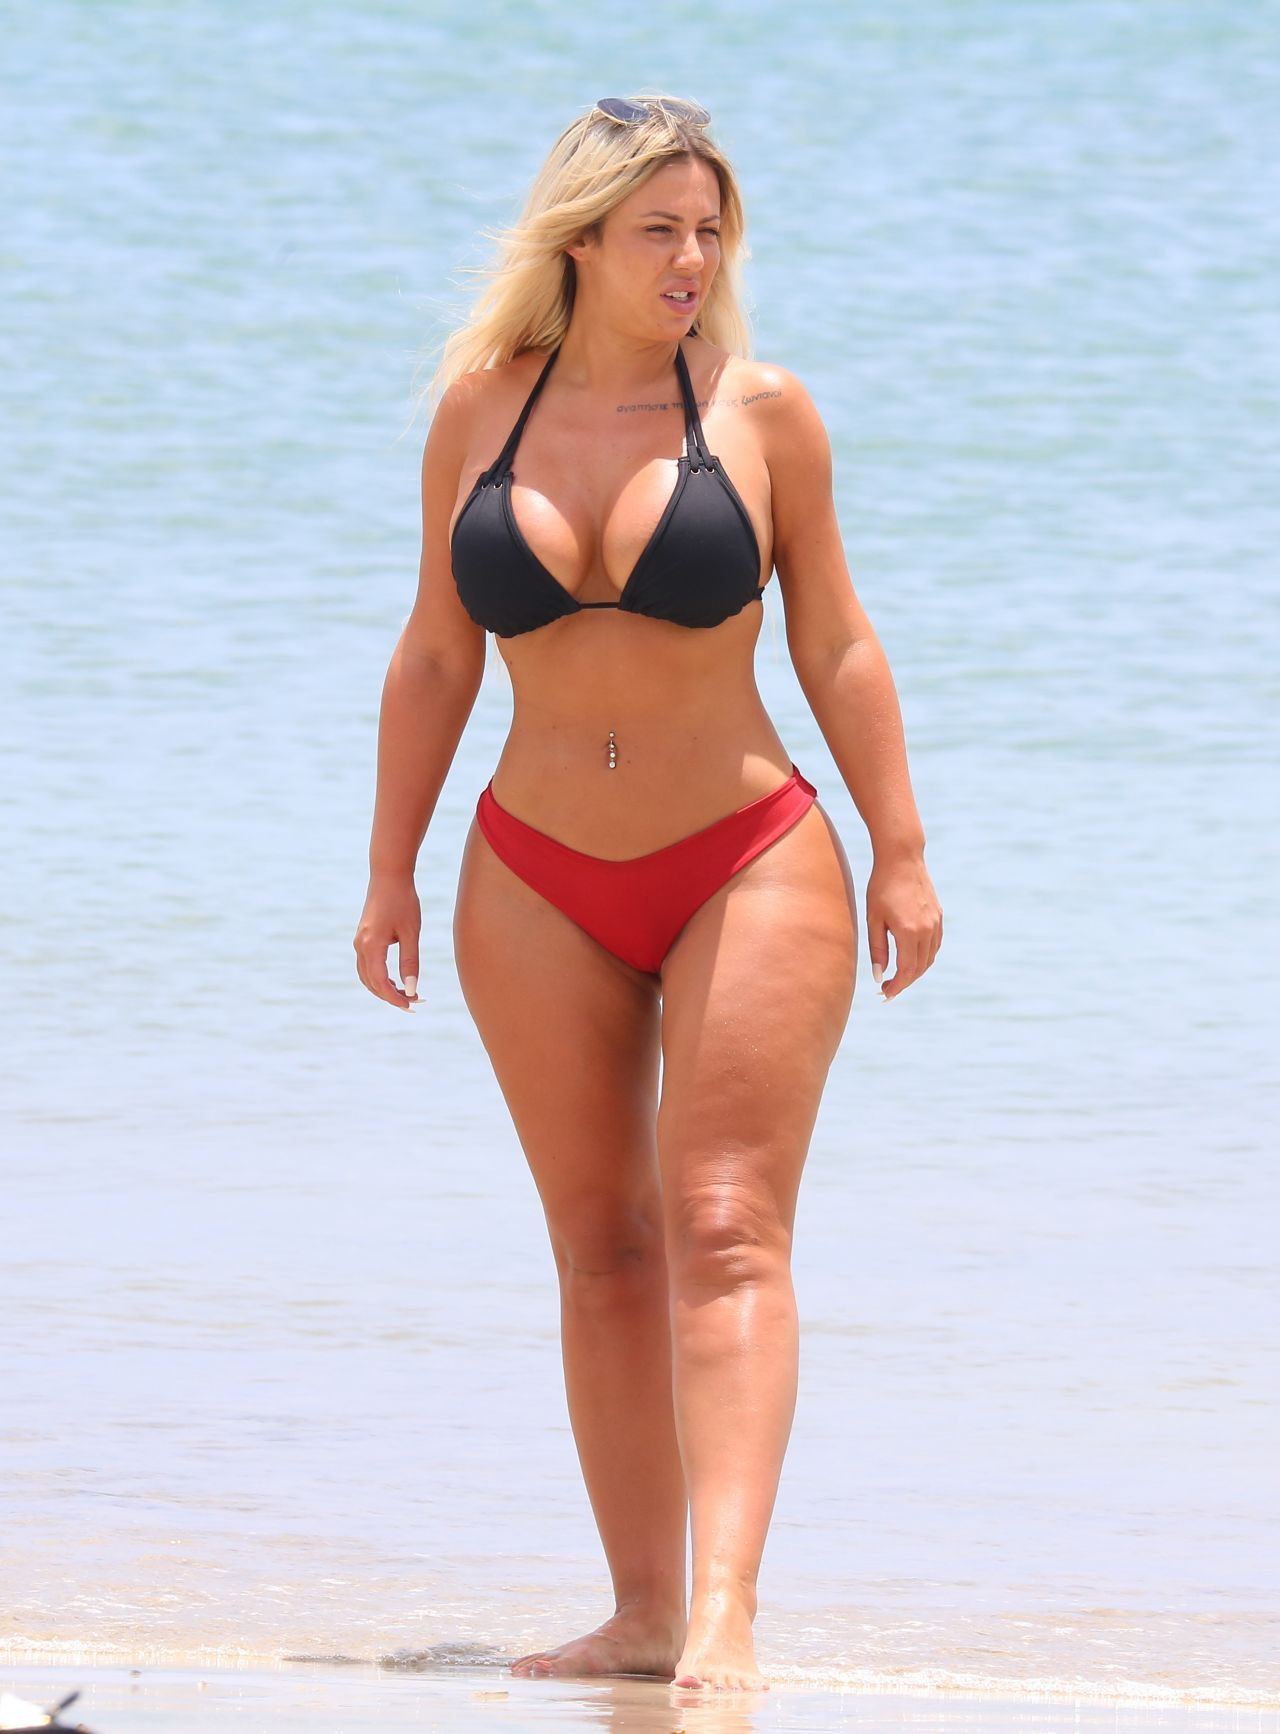 Hot Holly Hagan nudes (87 photo), Topless, Fappening, Instagram, butt 2018